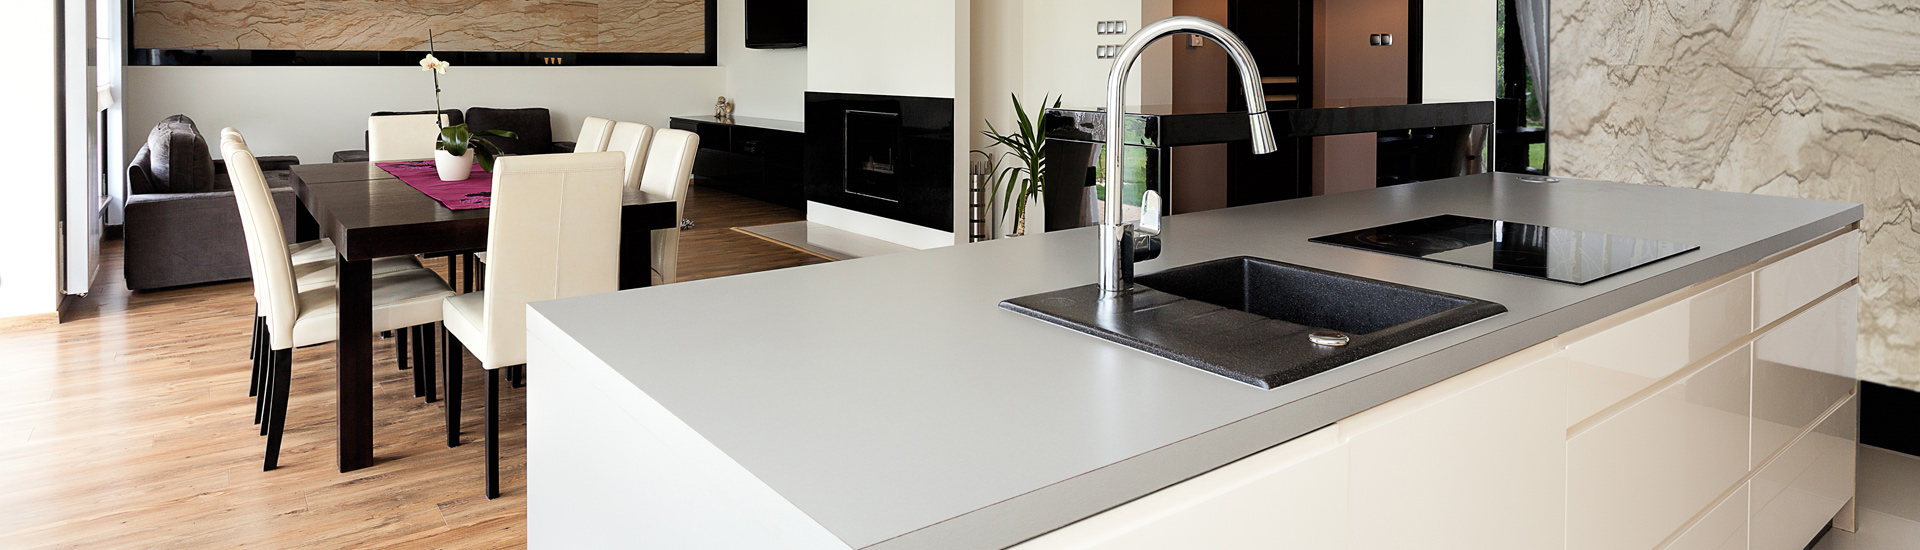 Beautiful Countertop With Elegant Interior